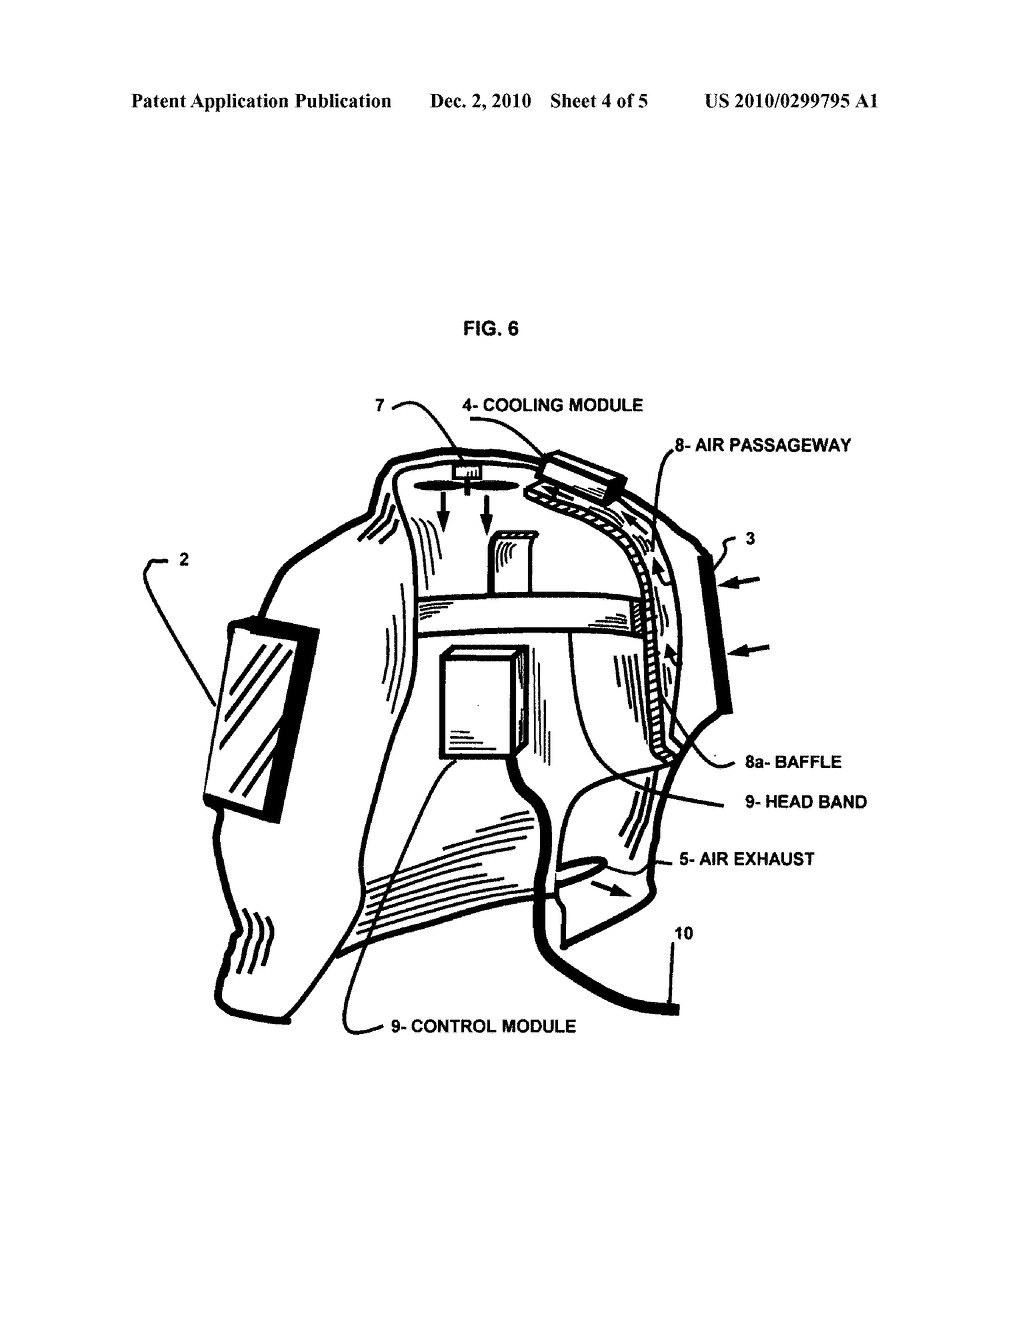 welding helmet diagram wiring diagram rh anynews co Welding Shield Clip Art Welding Blanket